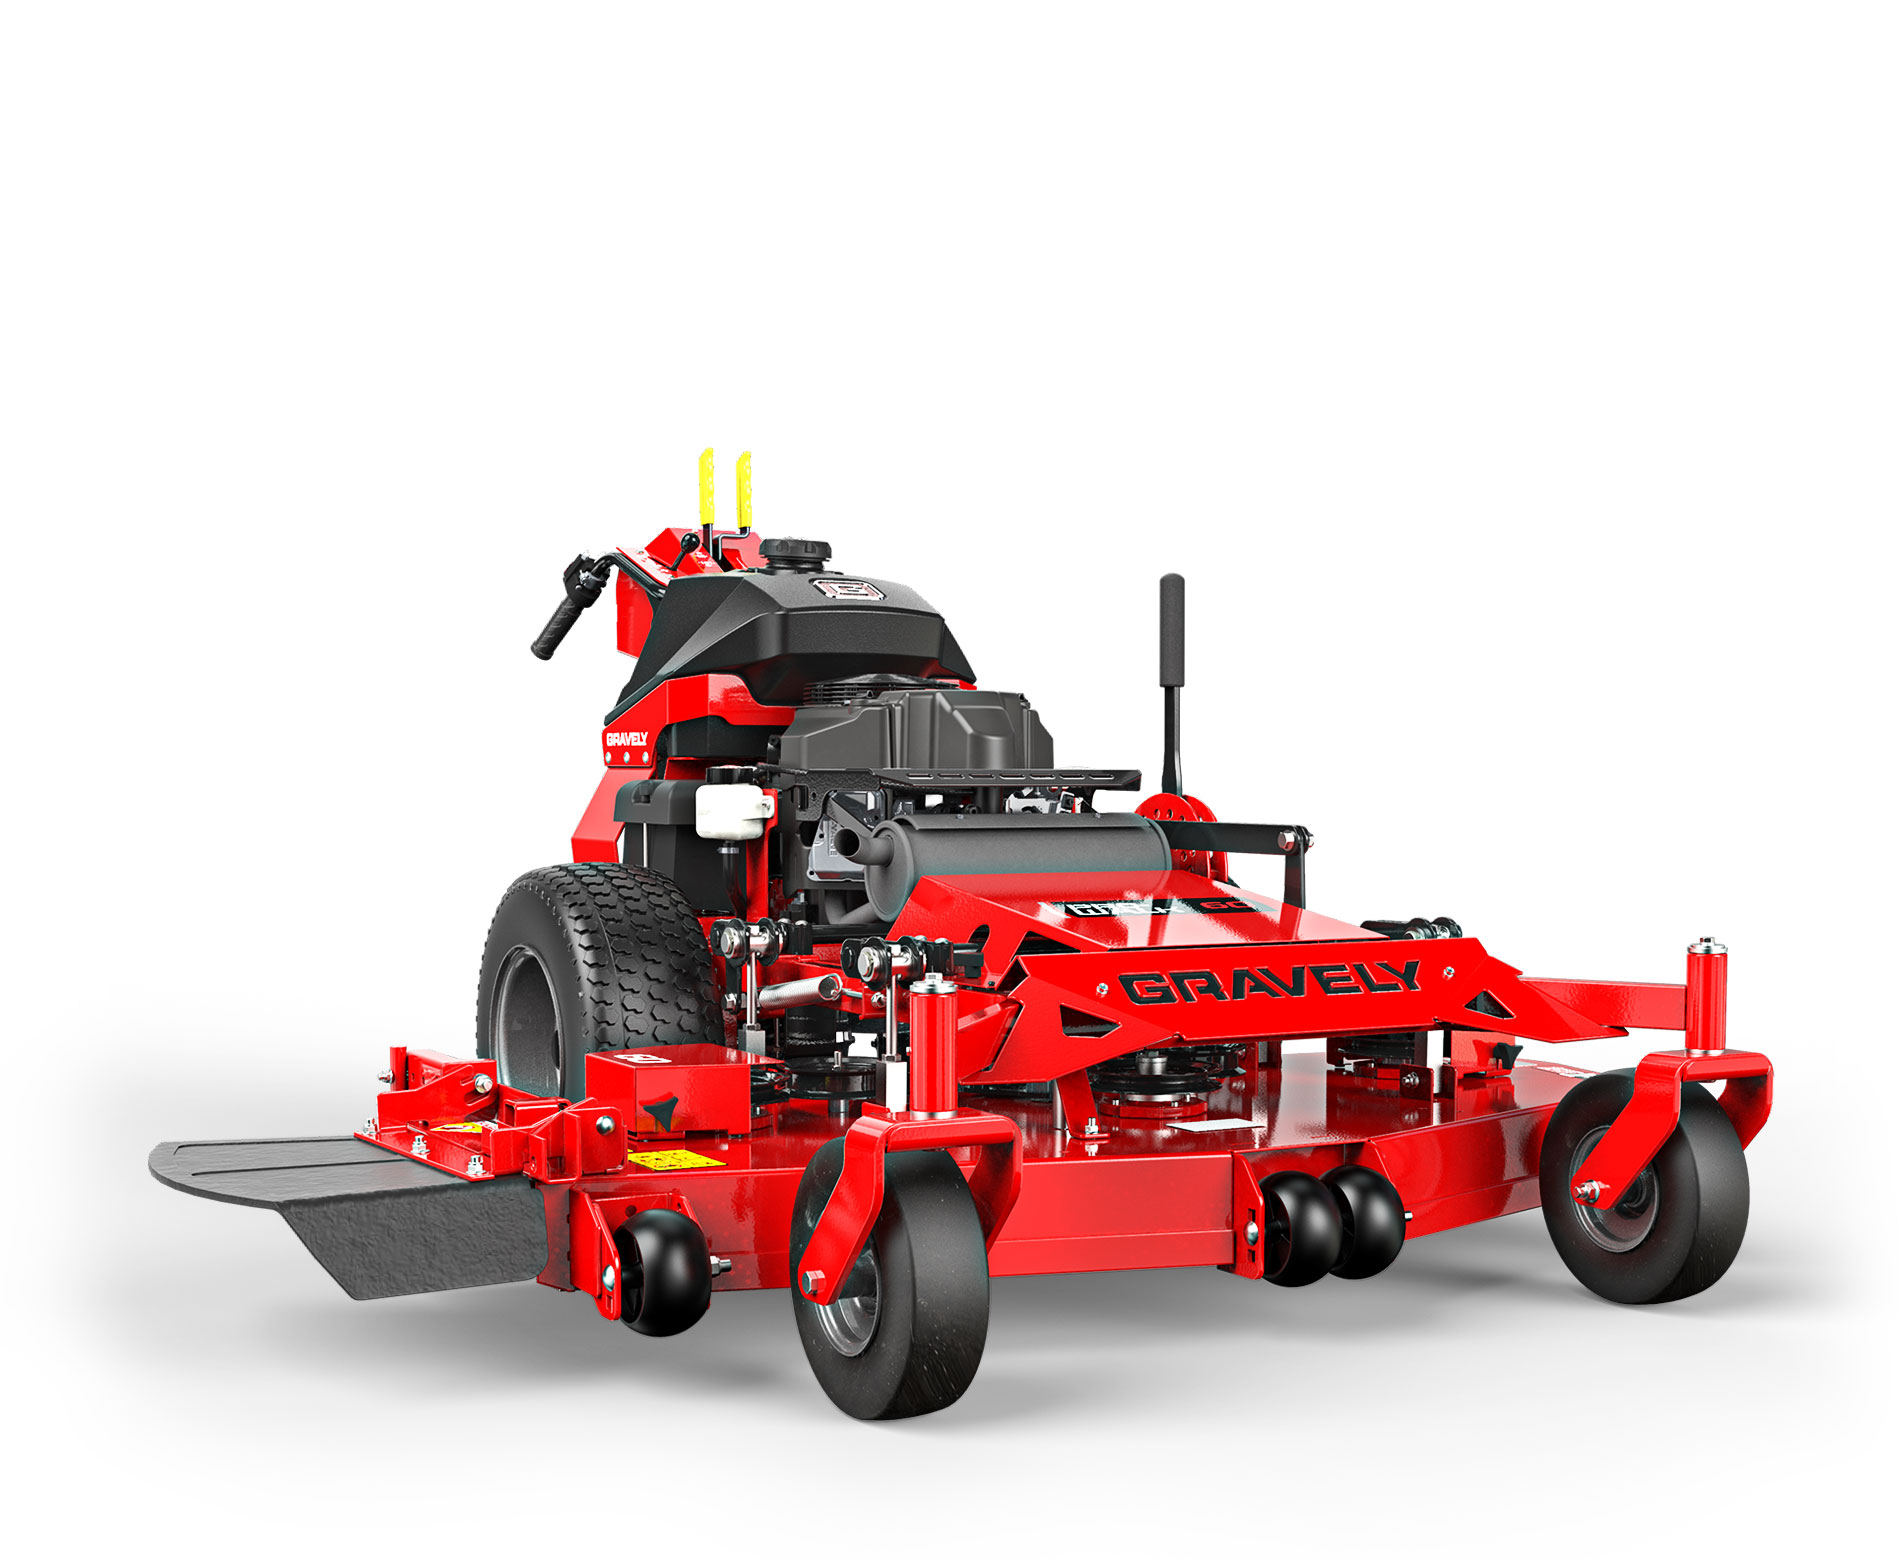 Gravely Pro Walk Hydro Mower stock photo